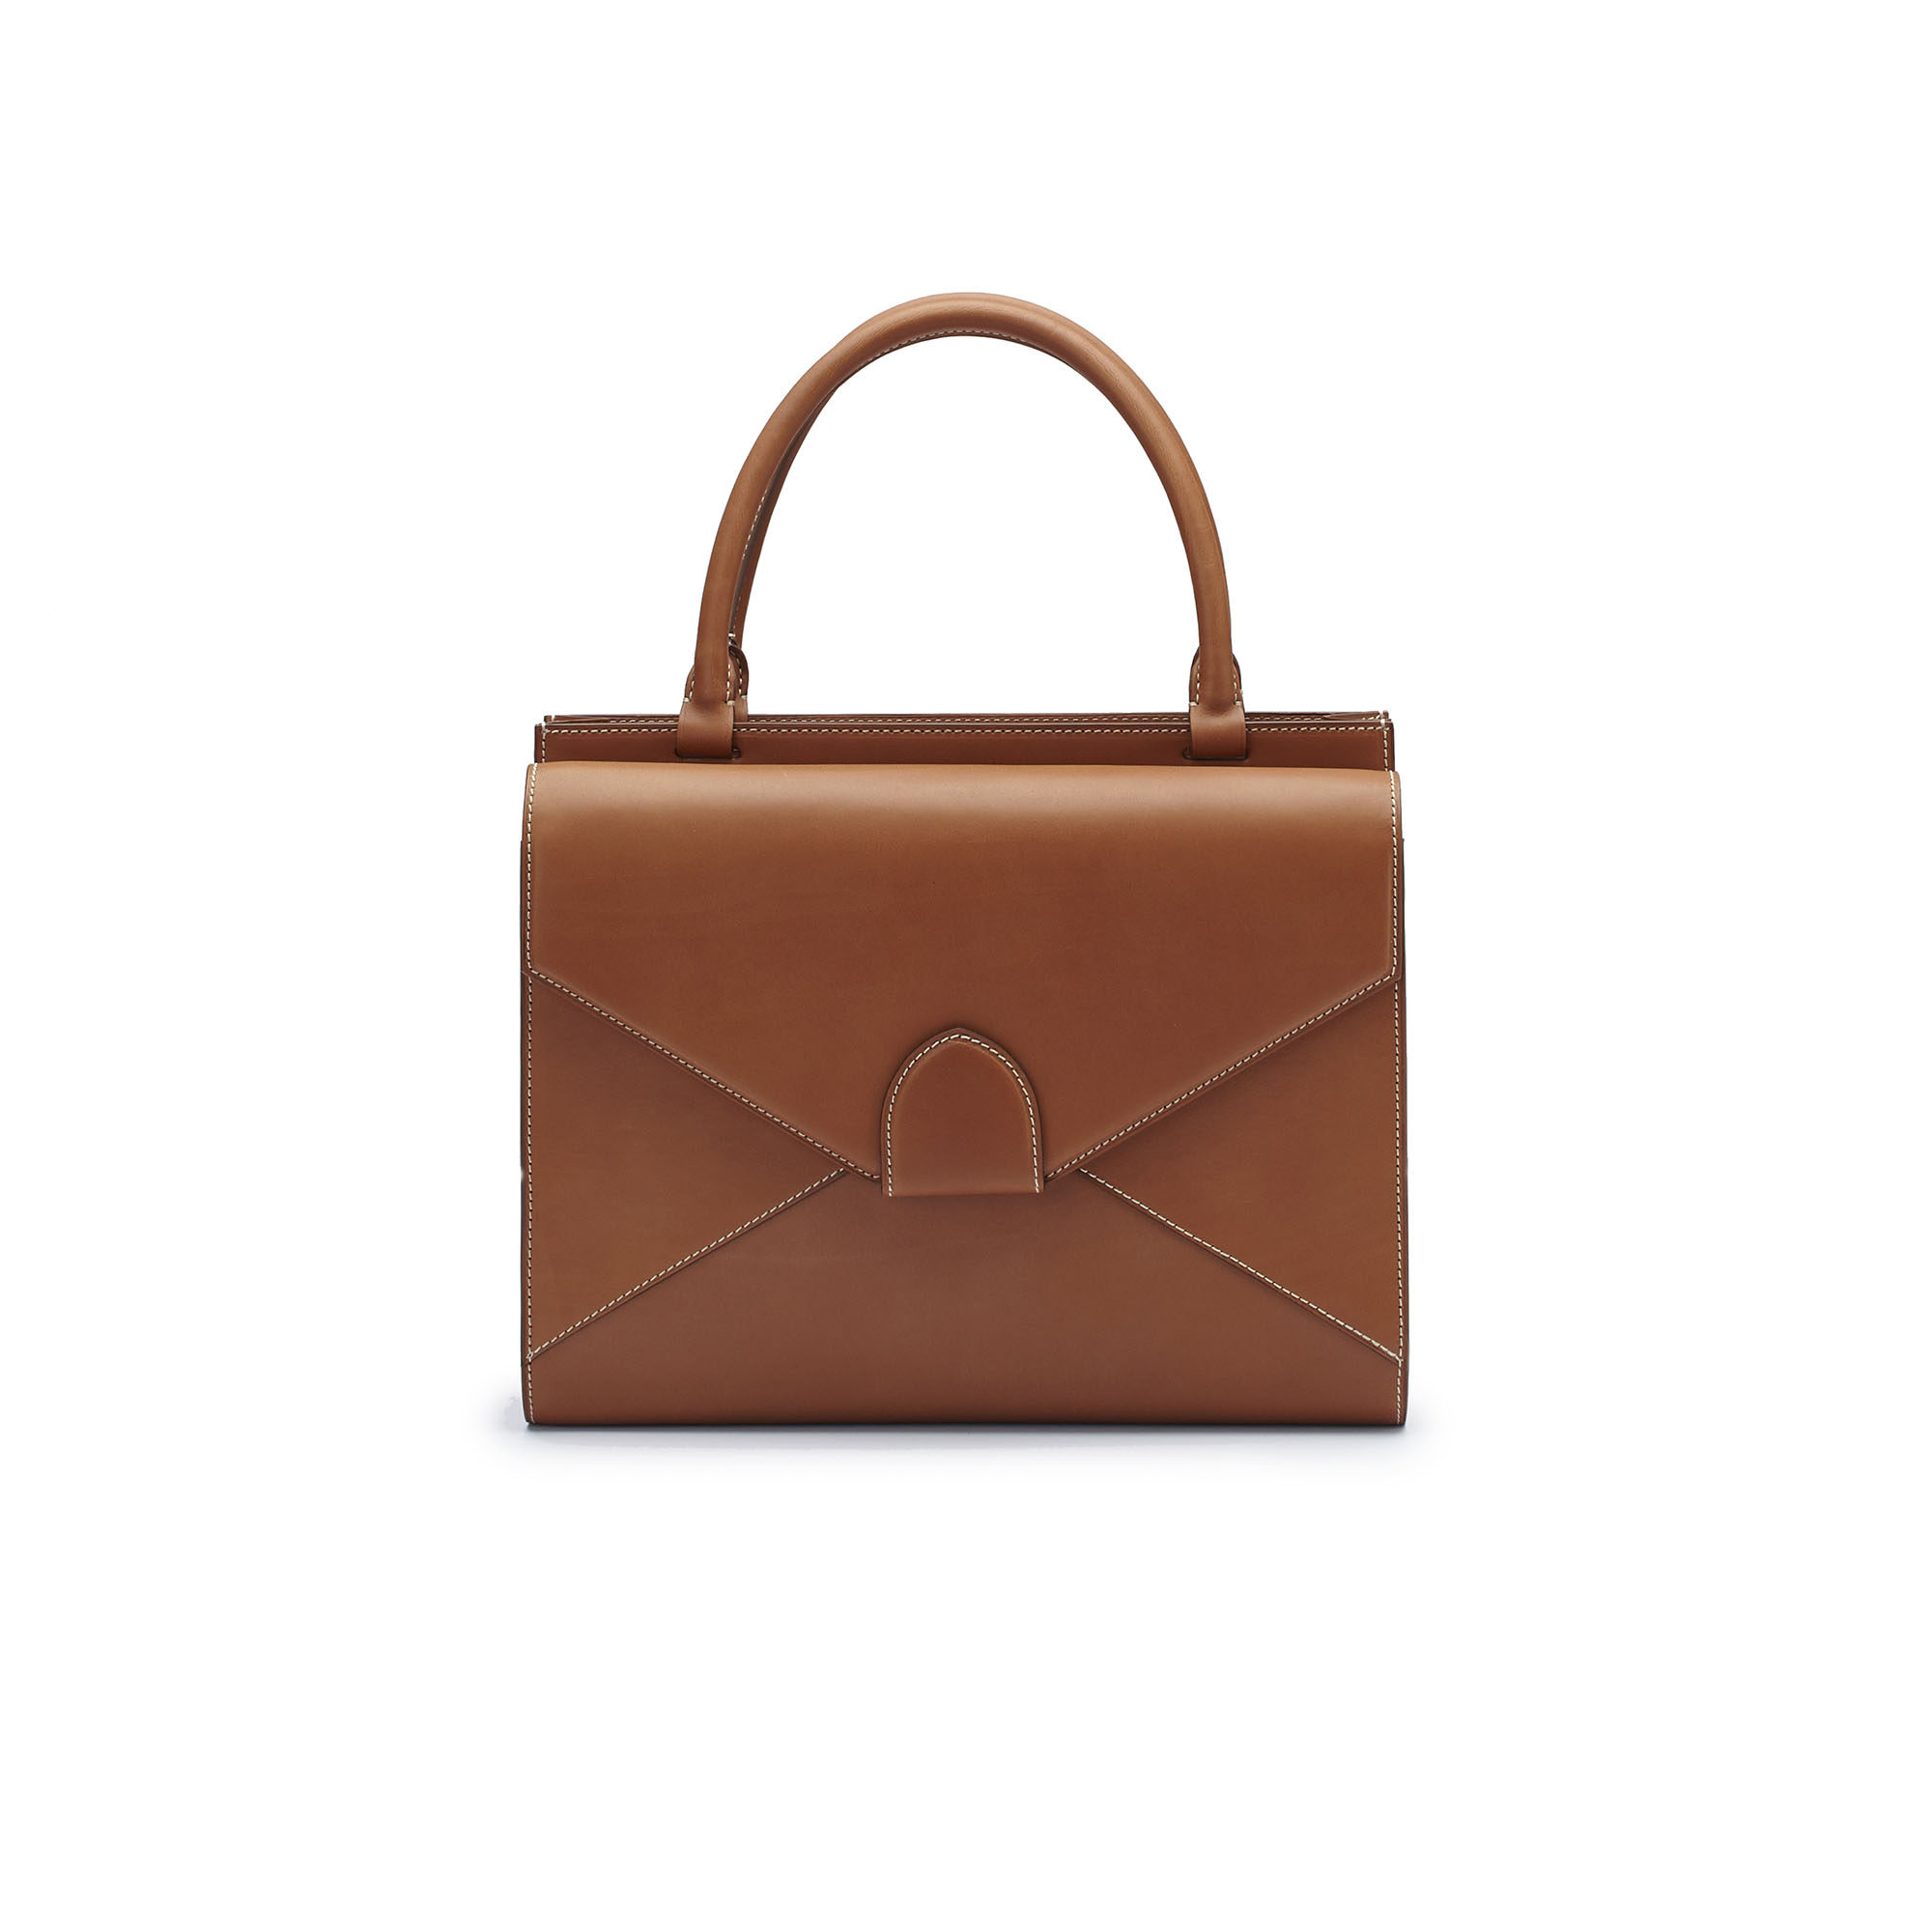 The cognac french calf Double Dafne bag by Bertoni 1949 01